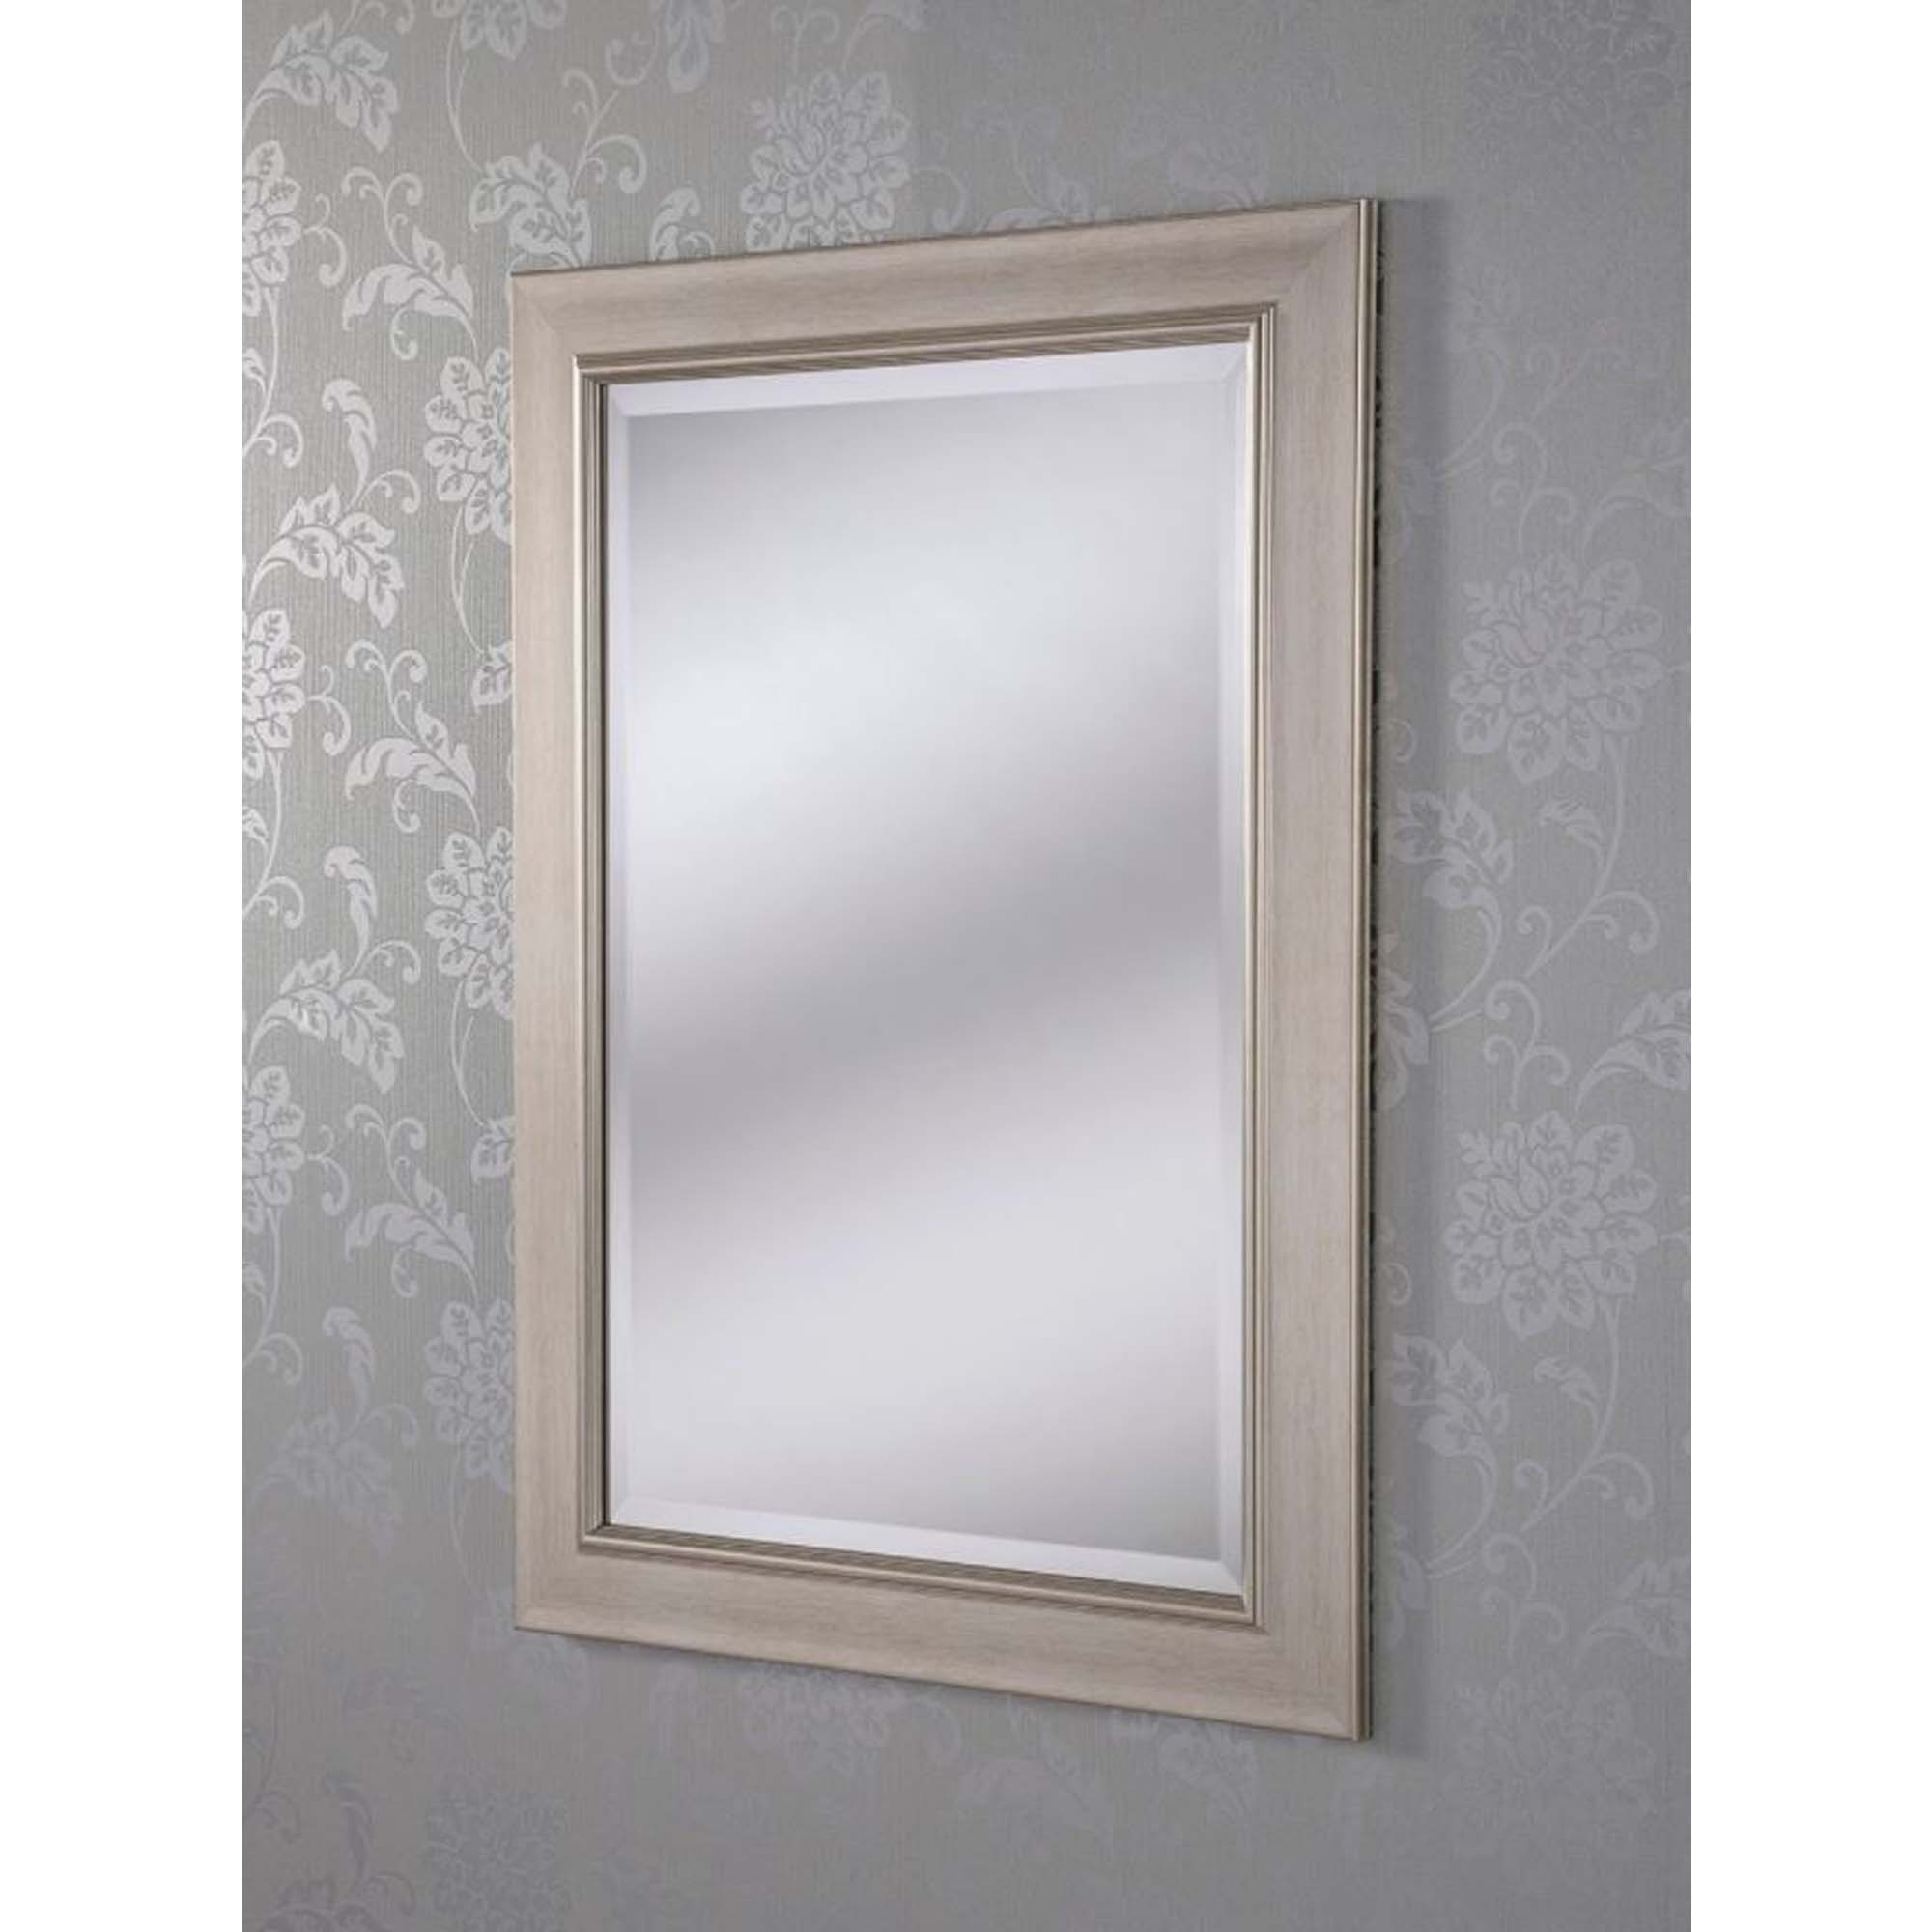 Most Recent Silver Framed Wall Mirrors With Regard To Decorative Silver Framed Rectangular Wall Mirror (View 8 of 20)